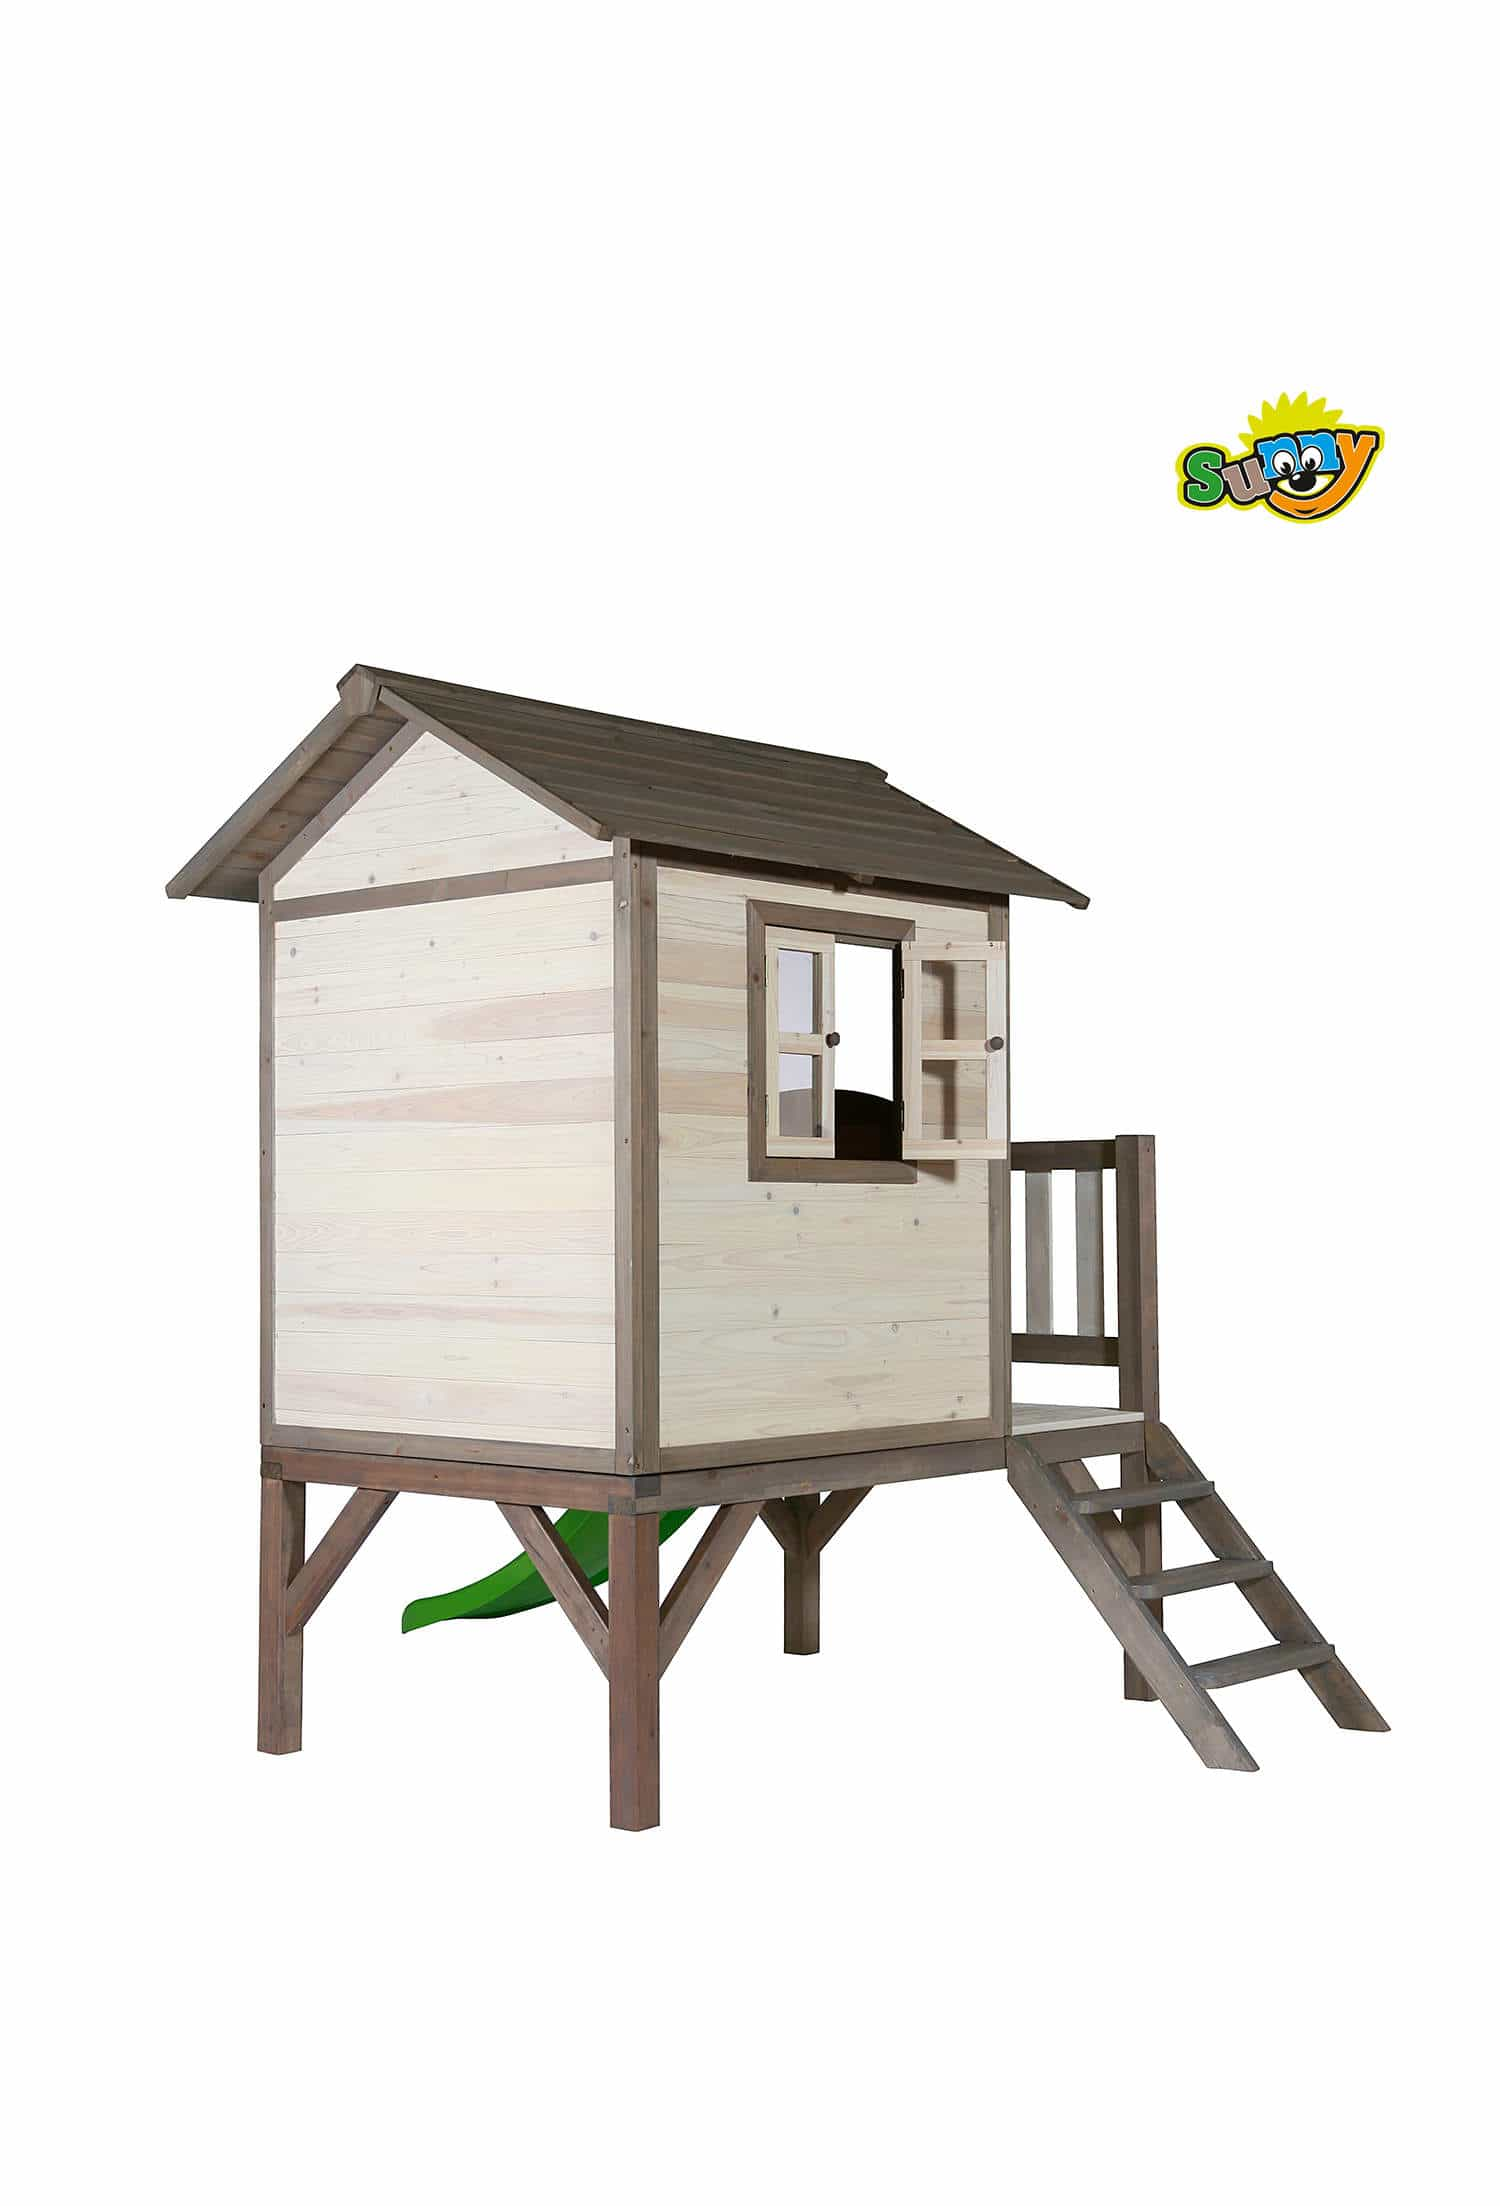 Sunny playhouse lodge xl garden furniture ireland for Outdoor furniture ireland